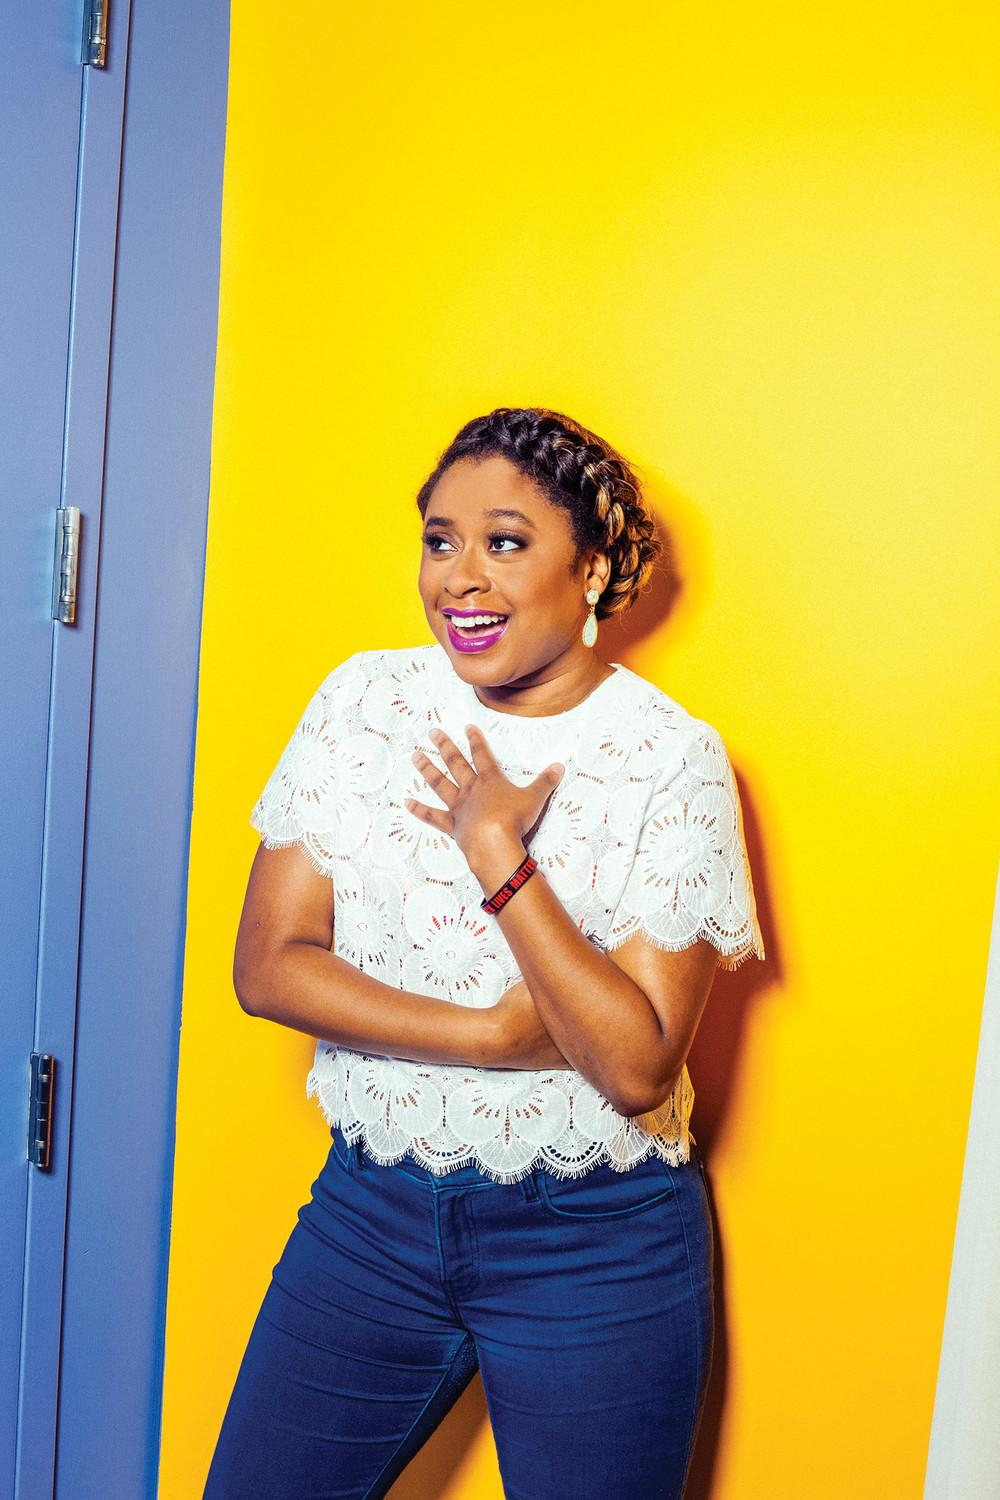 Phoebe Robinson - Comedian, co-host of 2 Dope Queens, and host of Soo Many White Guys,